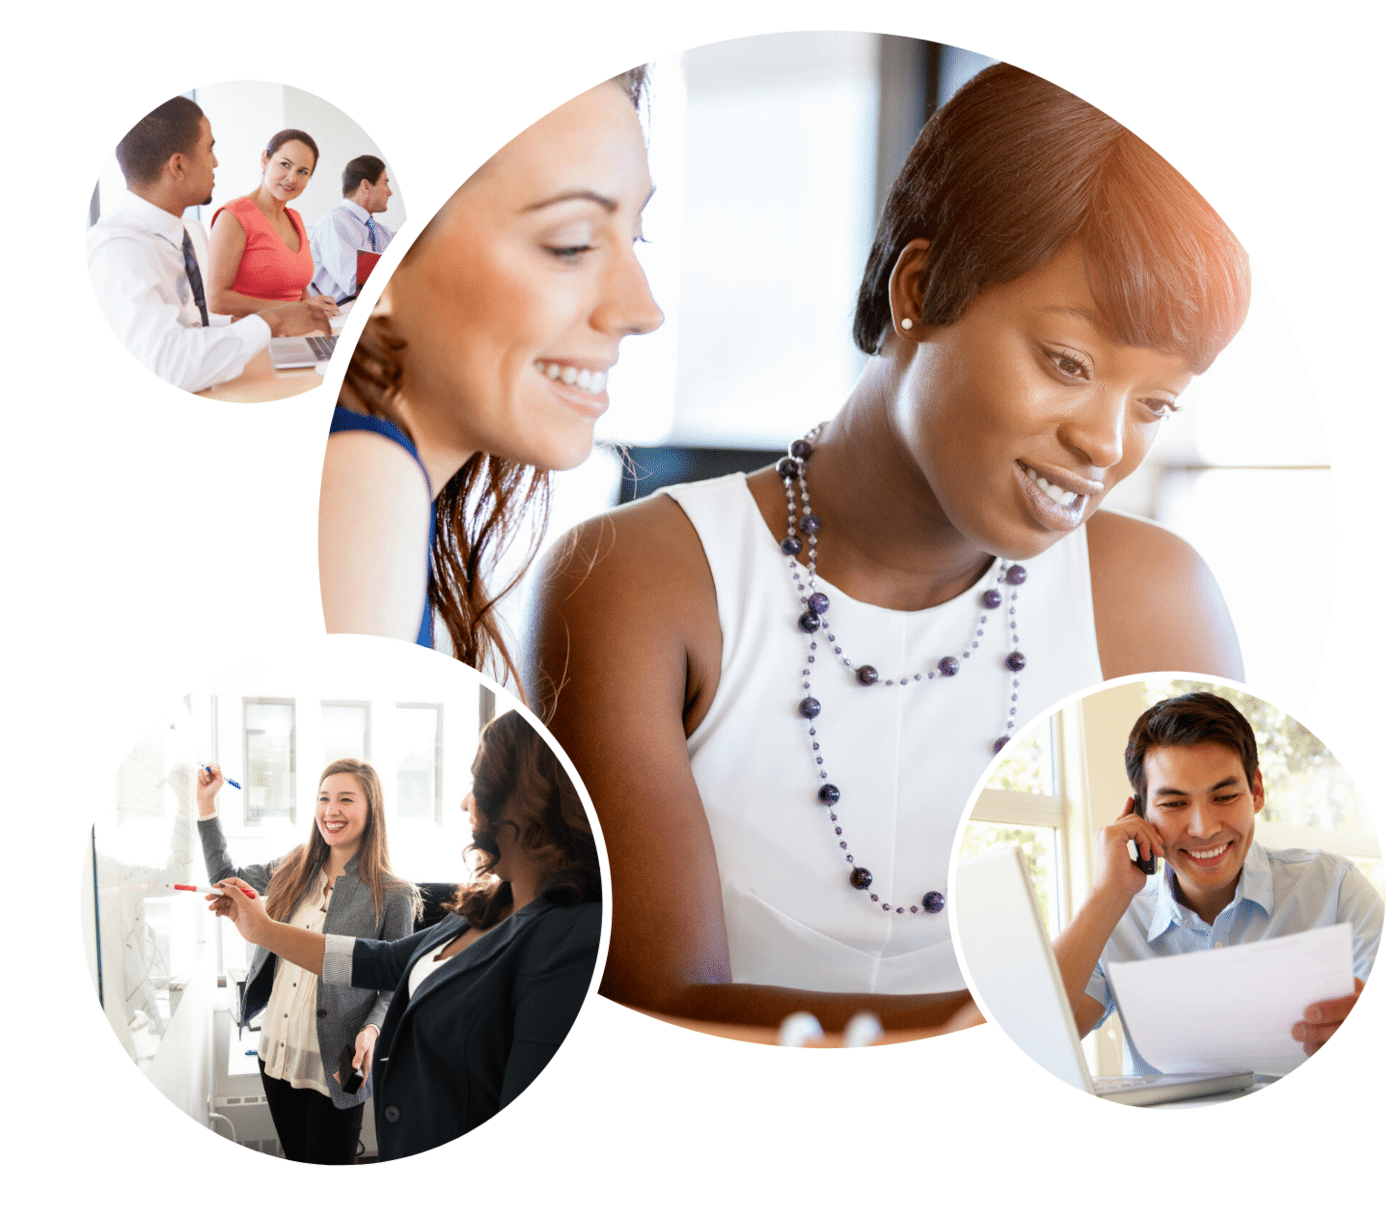 Helios HR Home page human capital consulting HR outsourcing recruitment services washington dc